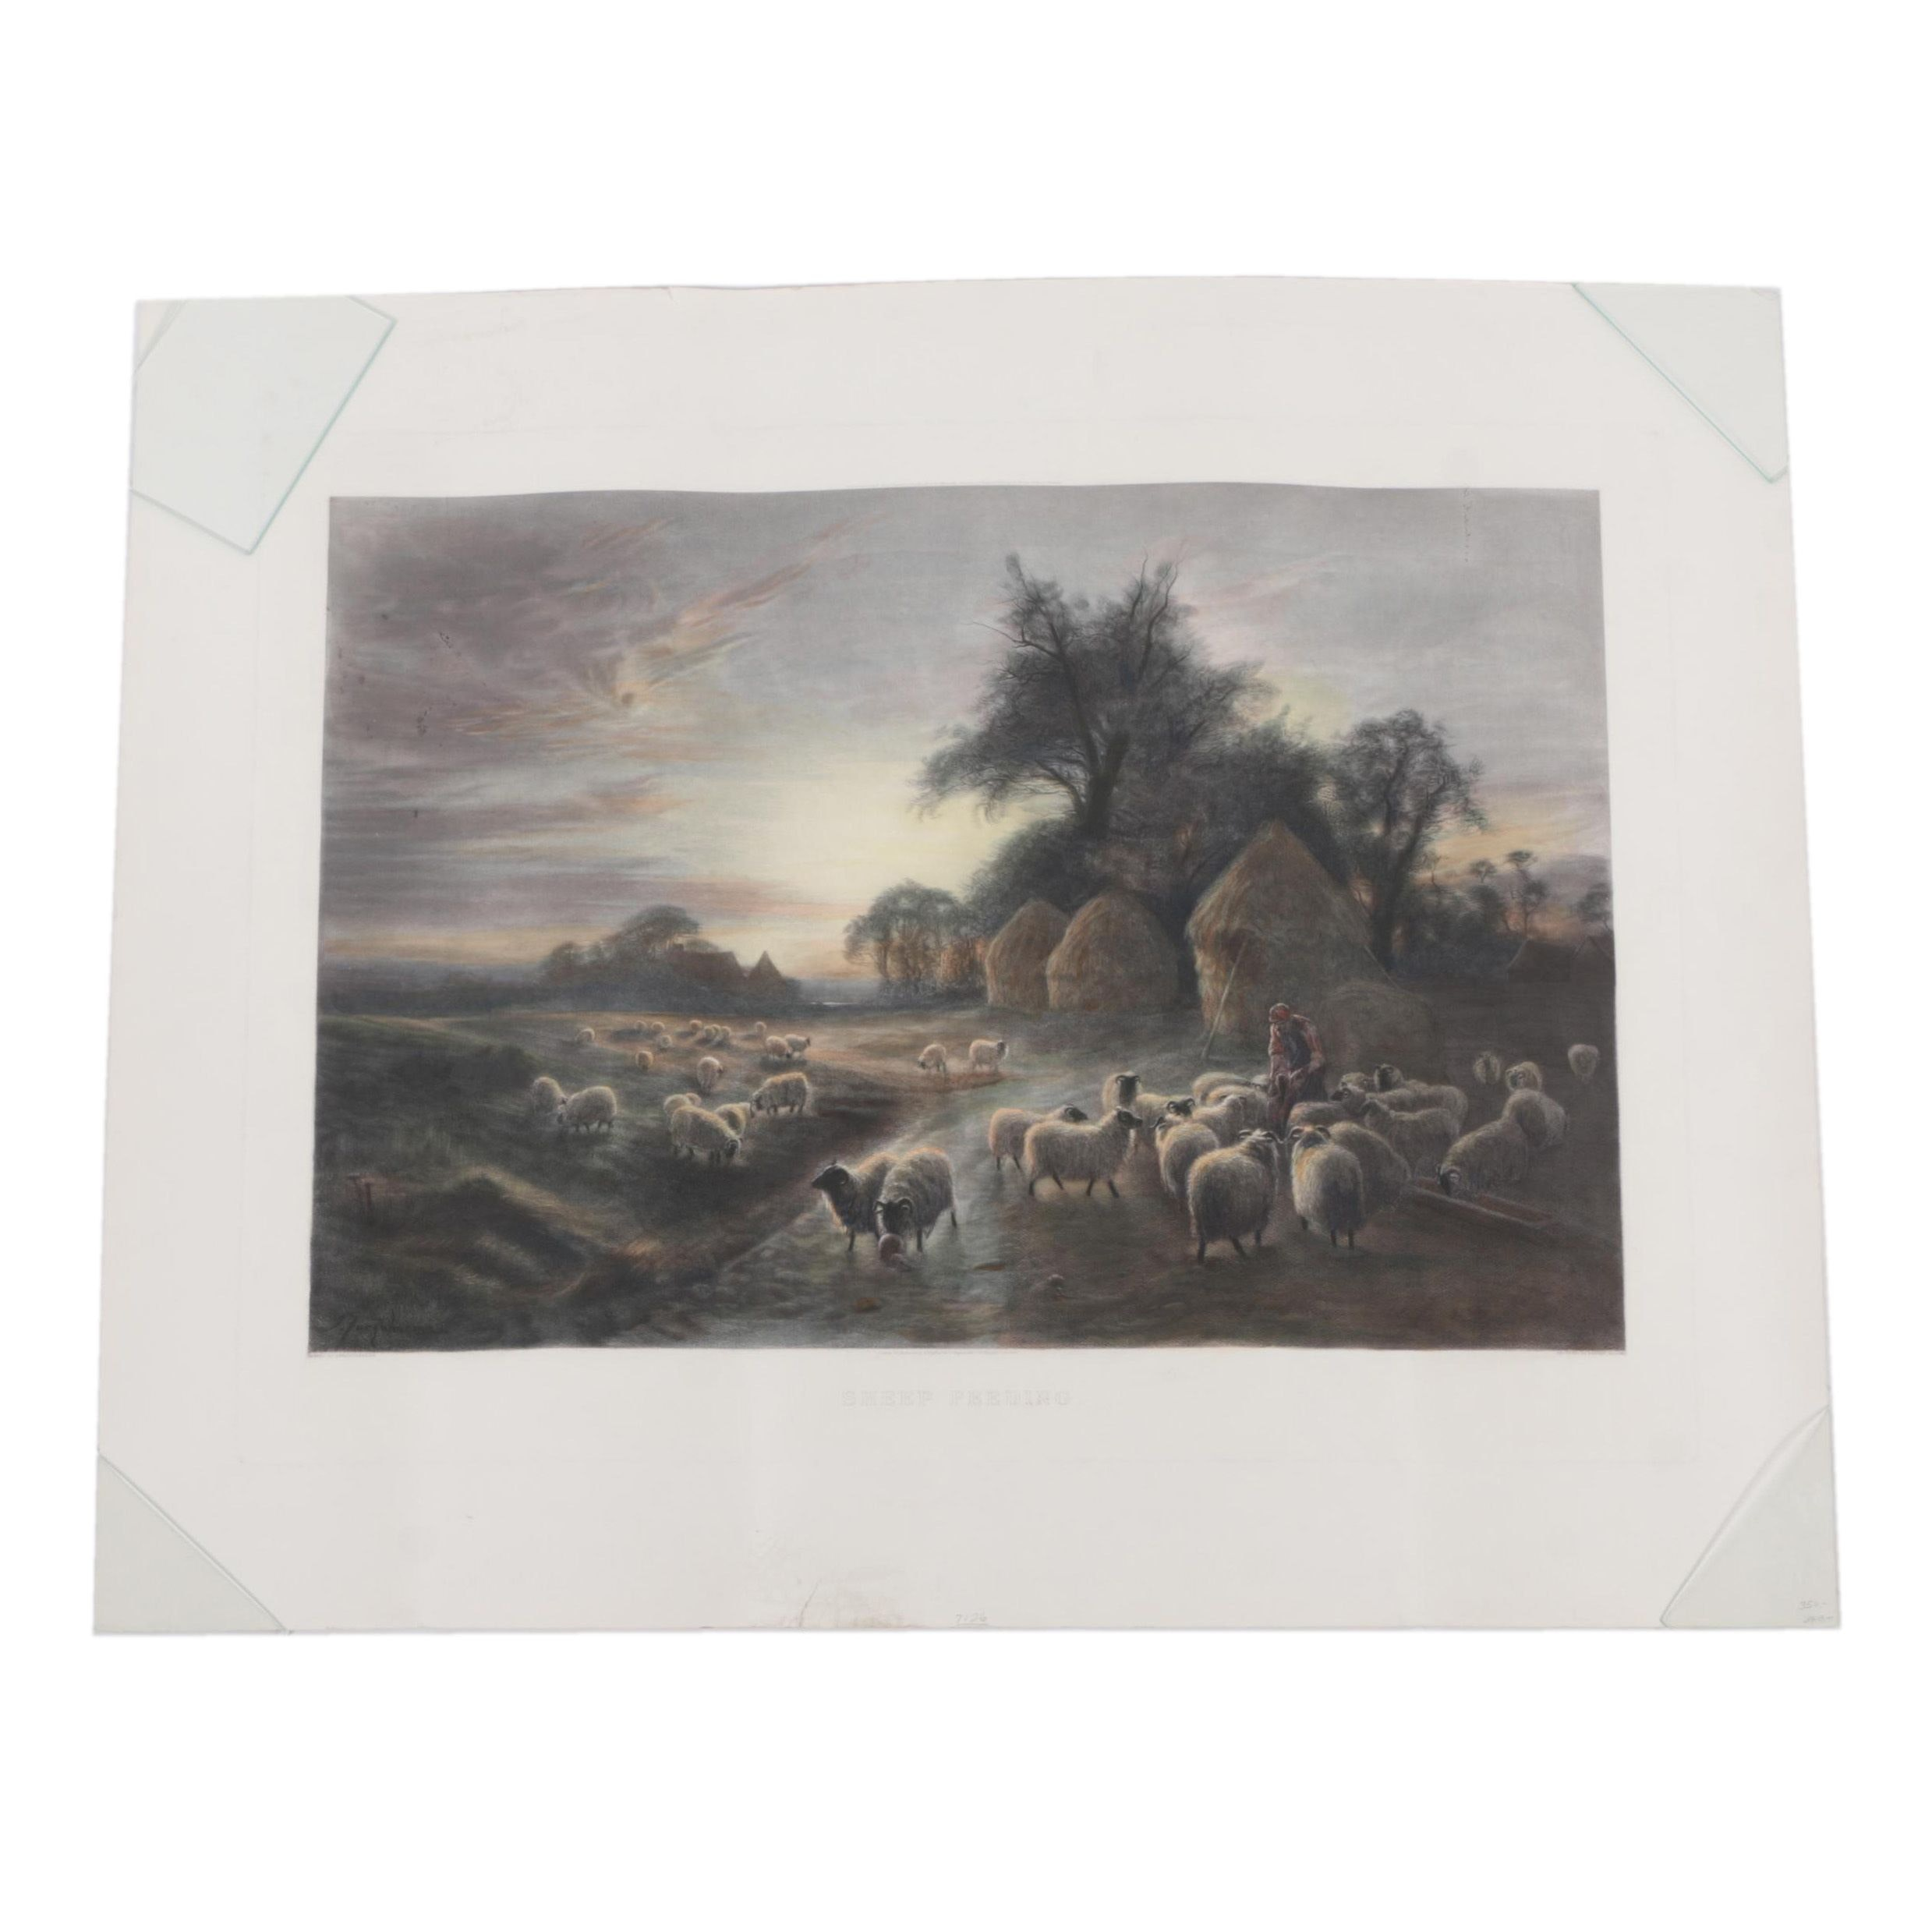 "Hand Colored Engraving After J. Farquharson's ""Sheep Feeding"""